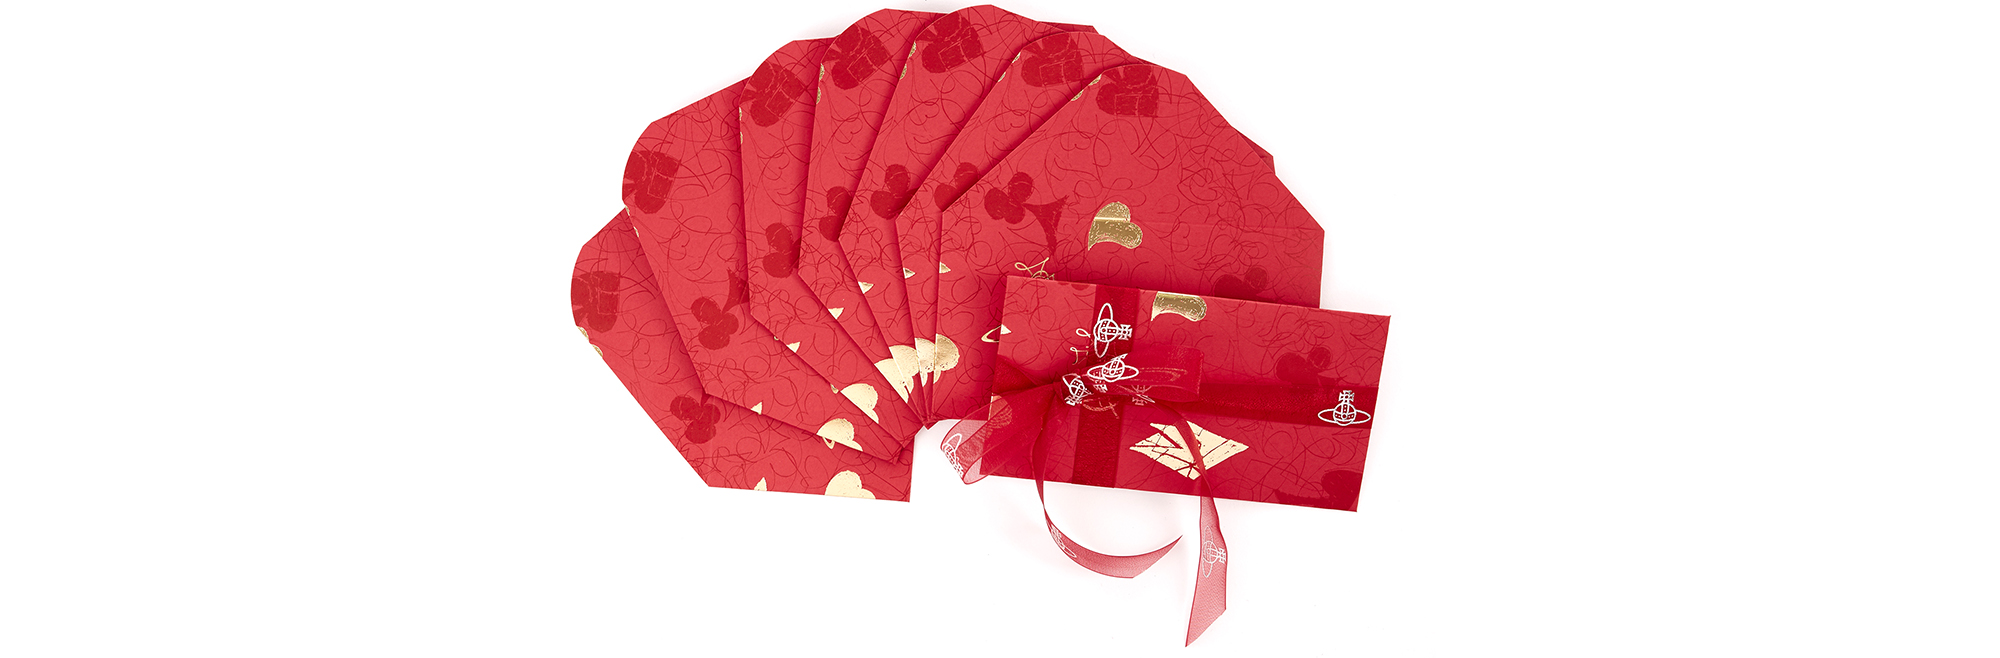 To celebrate Chinese New Year, Vivienne Westwood has beautifully designed the CNY Envelopes. Produced in a set of eight and tied with ribbon, purchase your stationery now while stocks last.